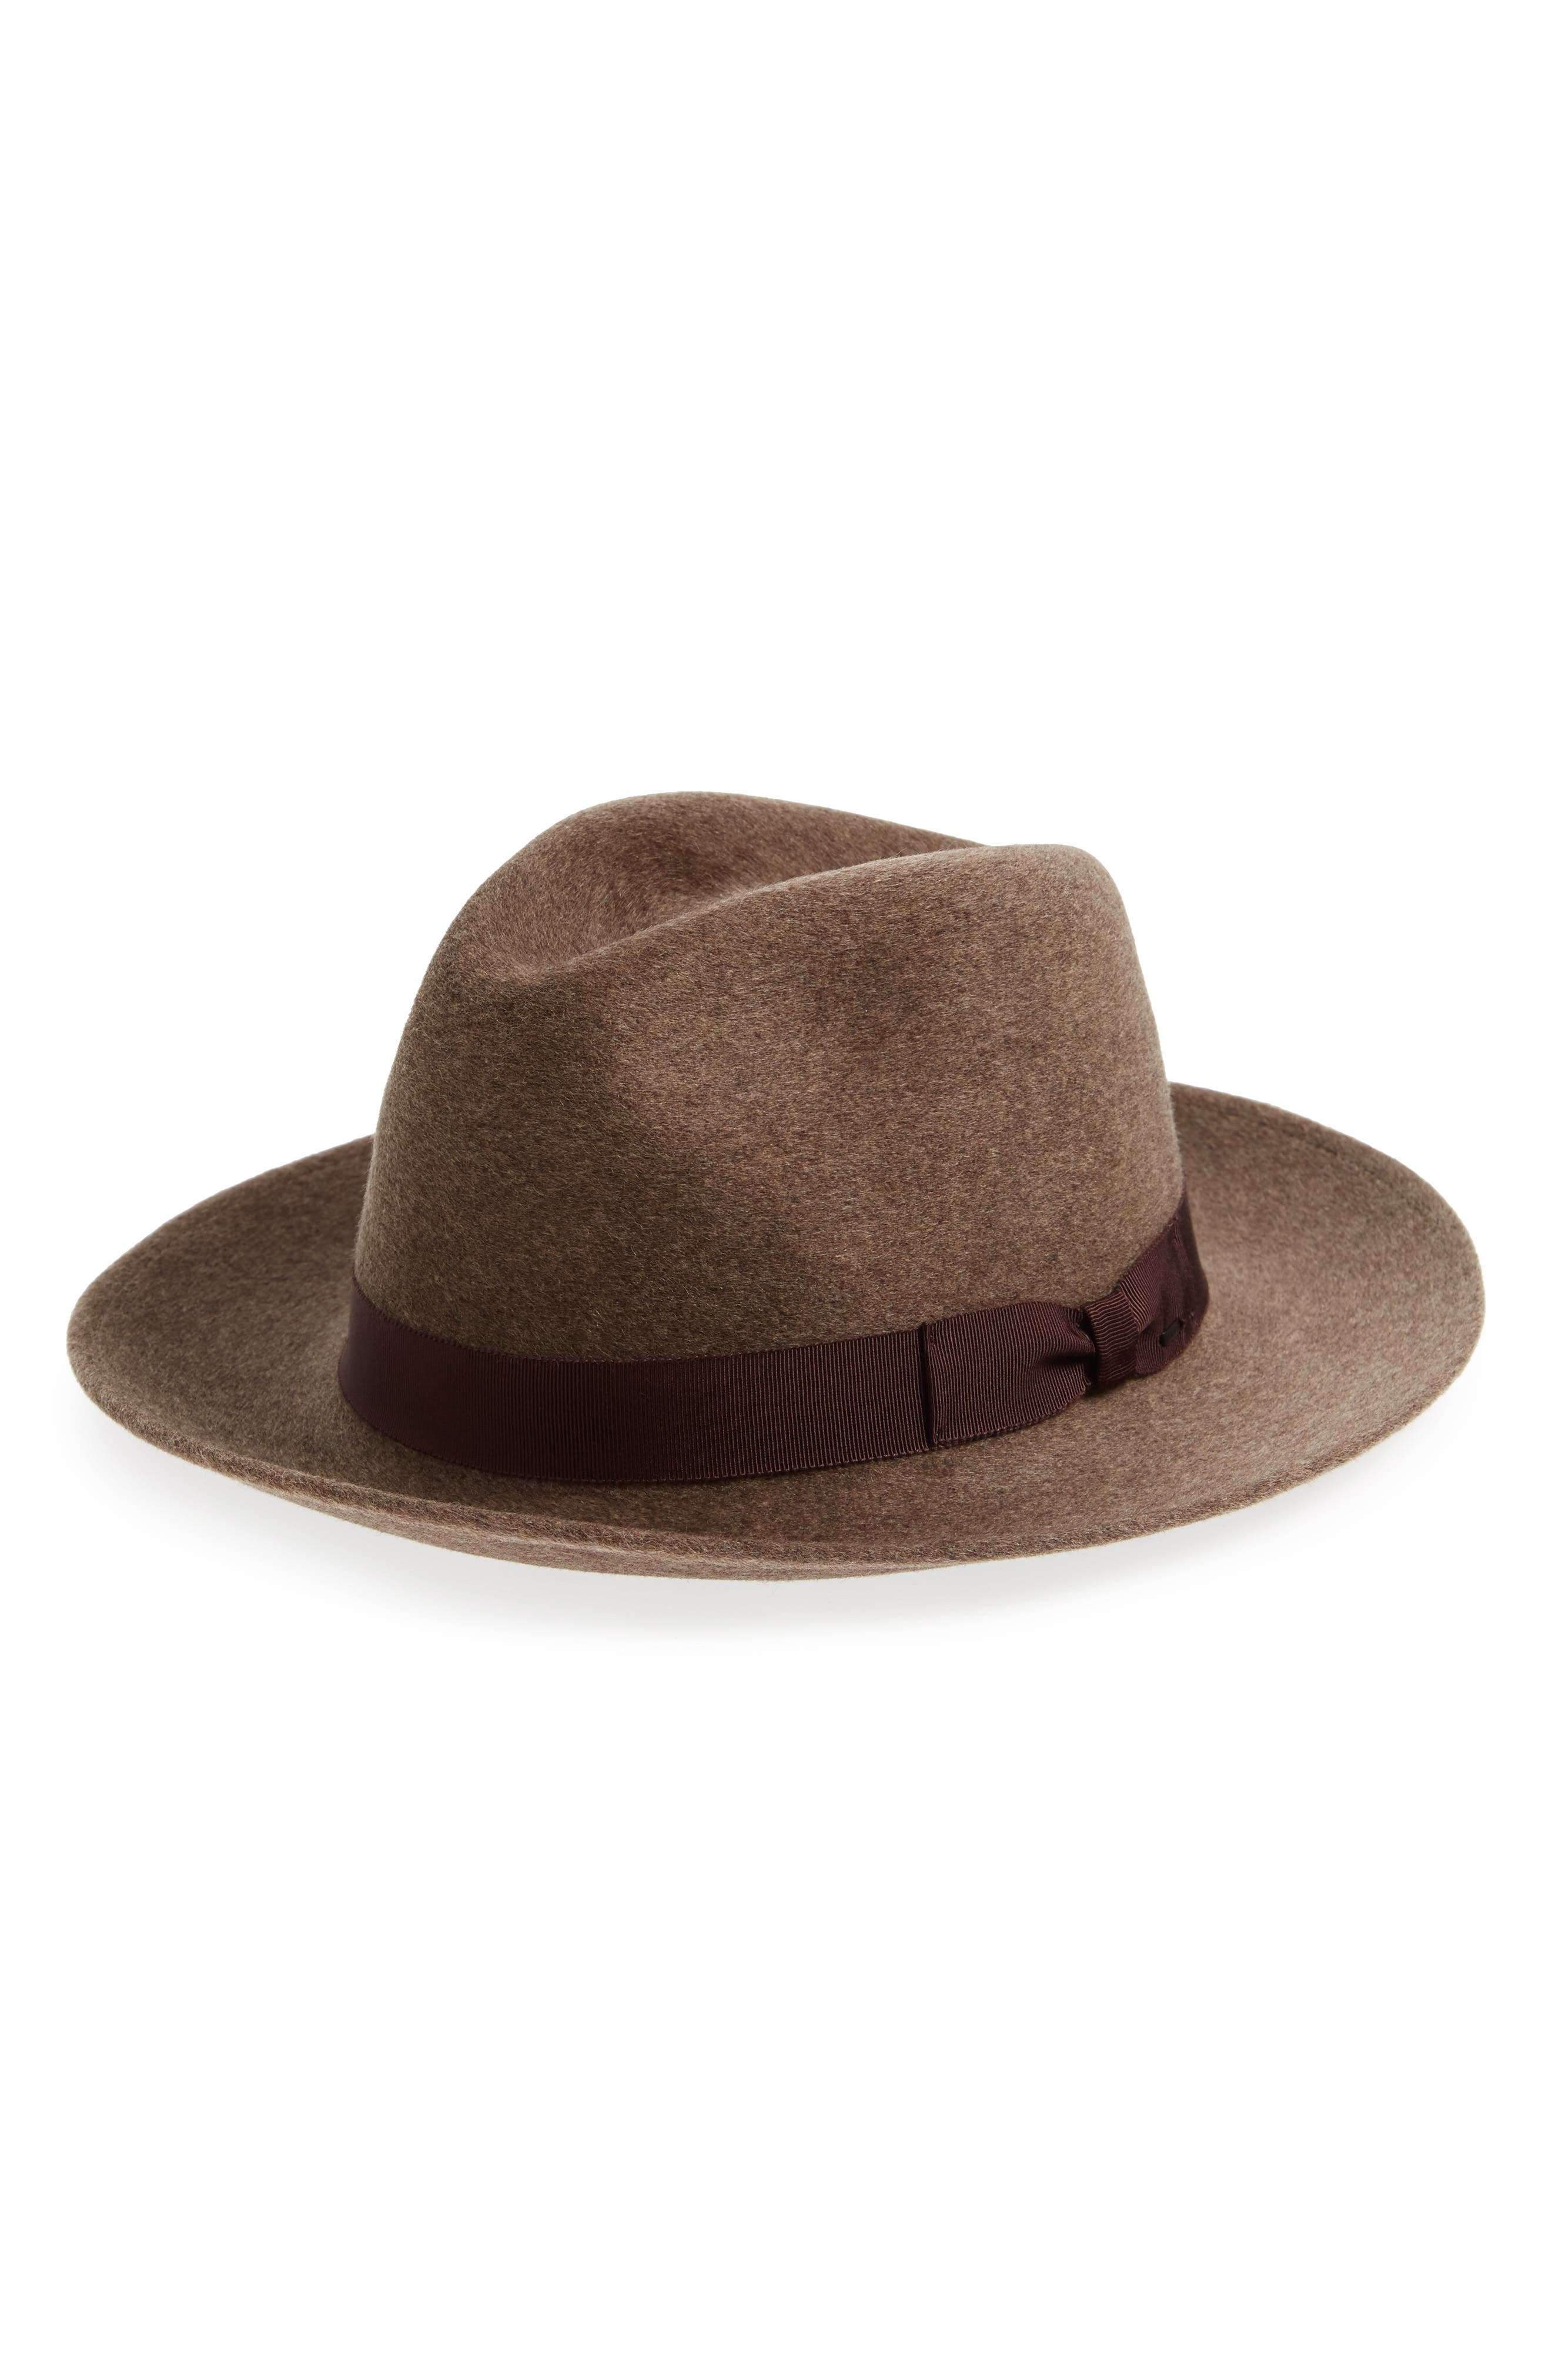 Bailey Criss Wool Fedora - Brown